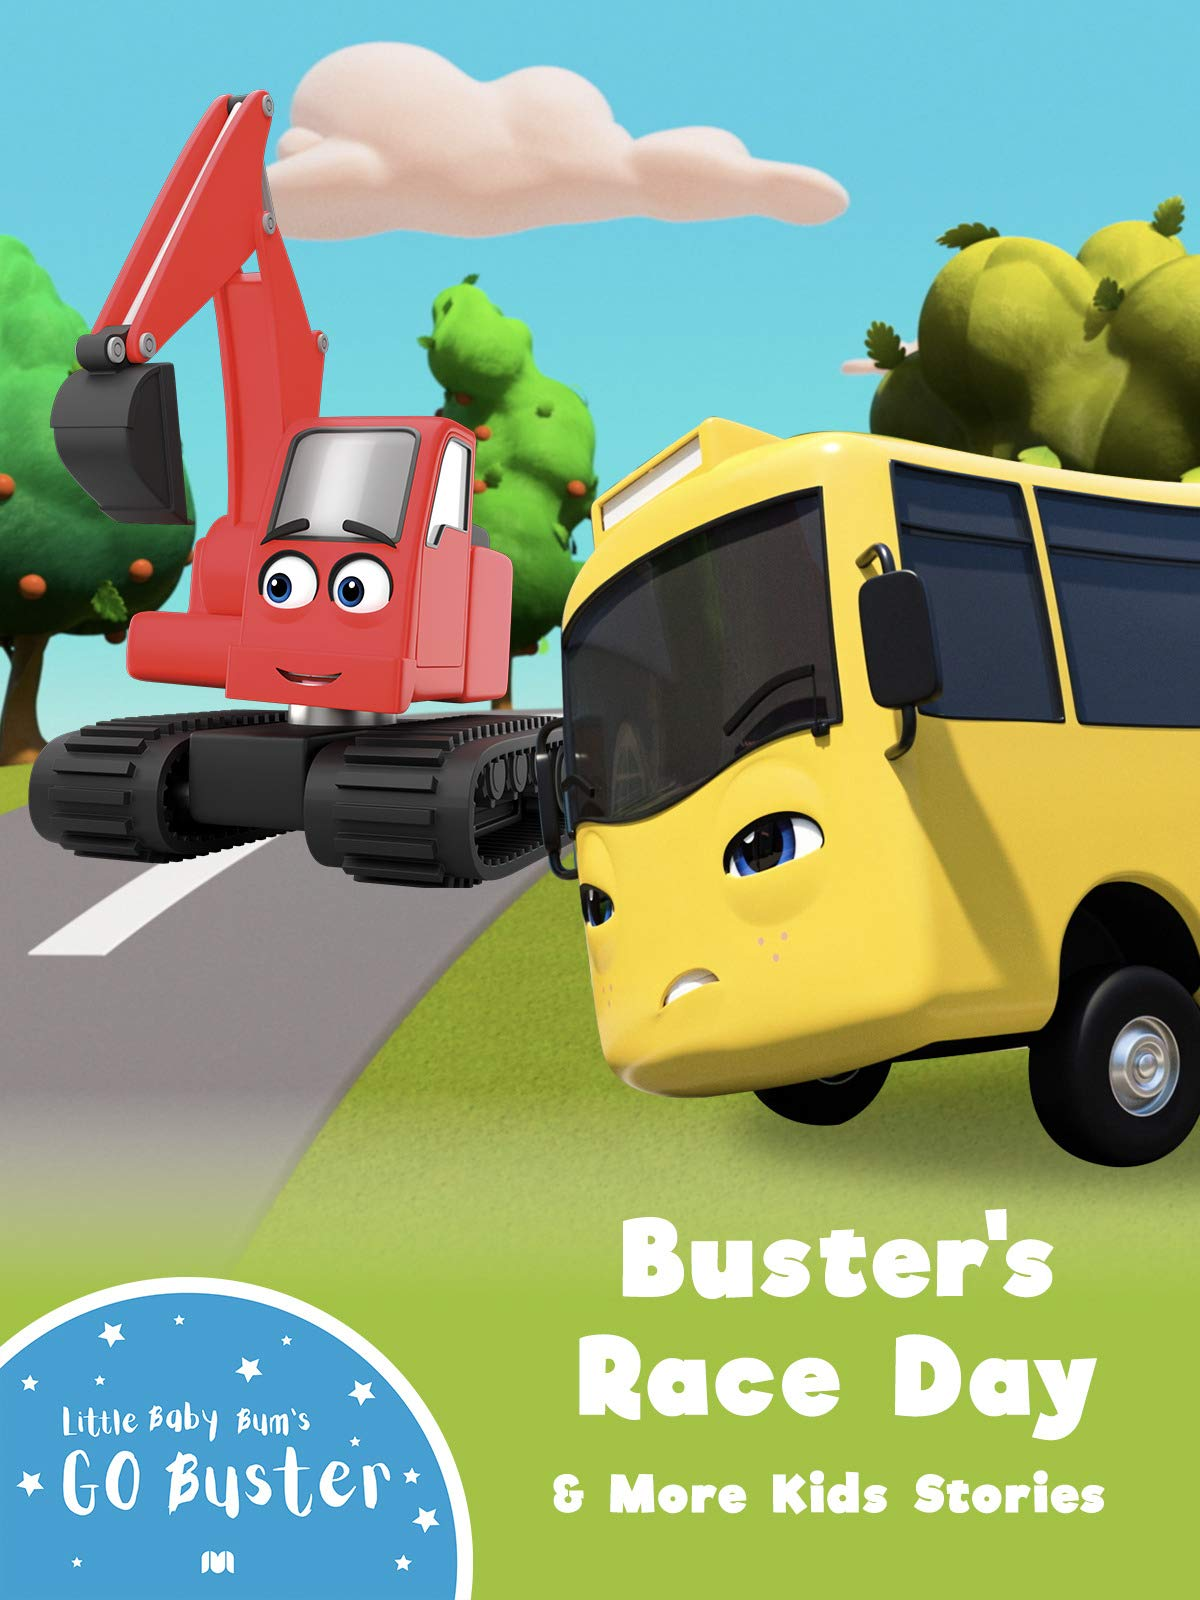 Go Buster - Buster's Race Day & More Kids Stories